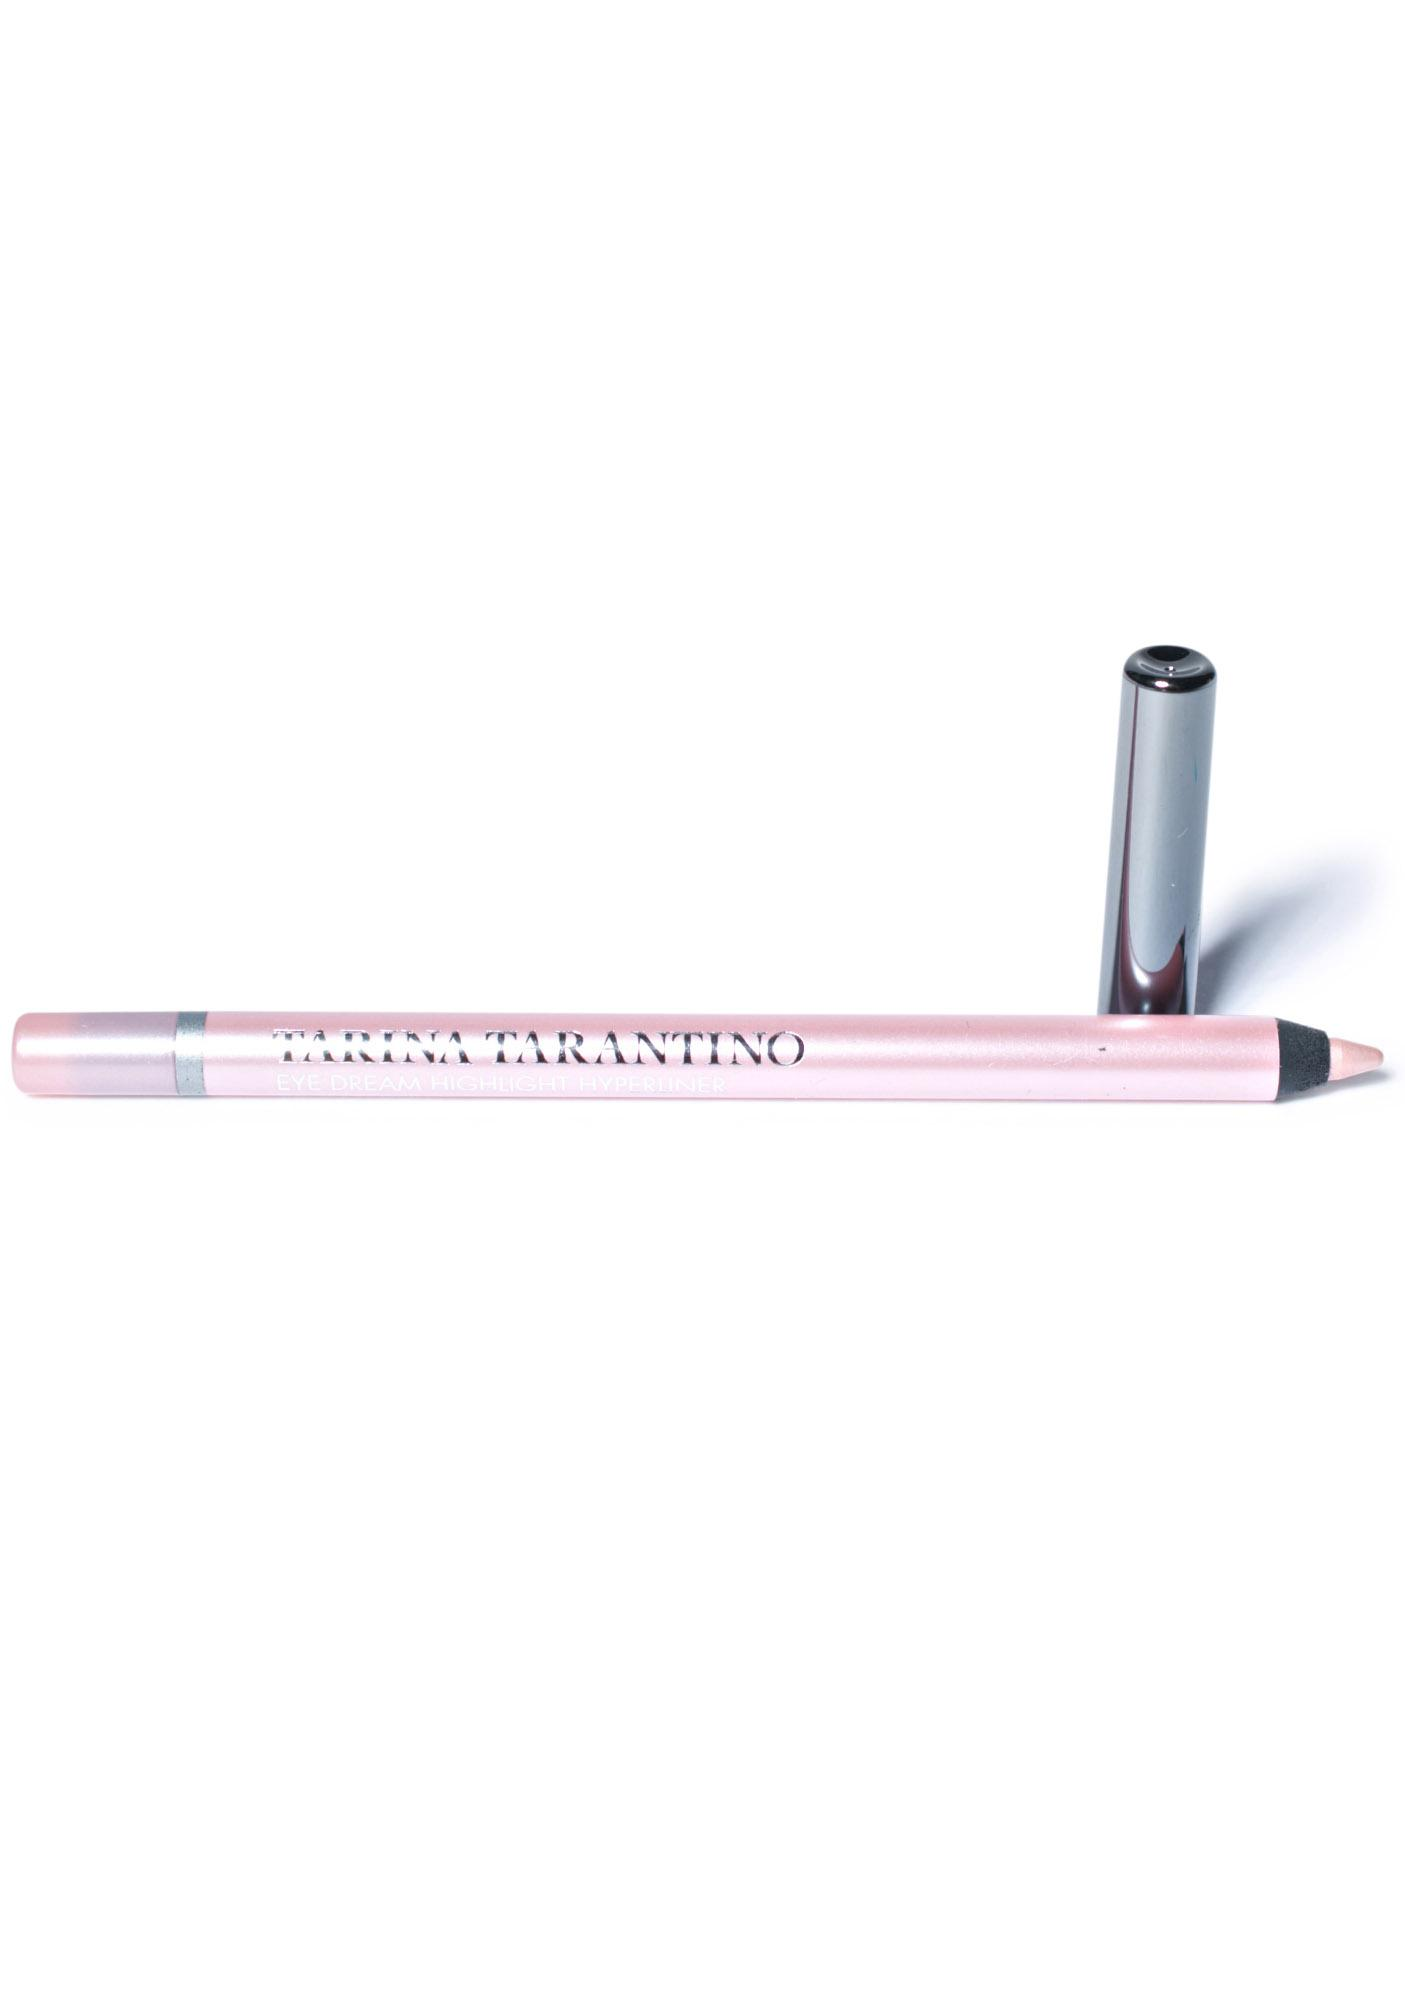 Tarina Tarantino Broken Doll Eyeliner Pencil